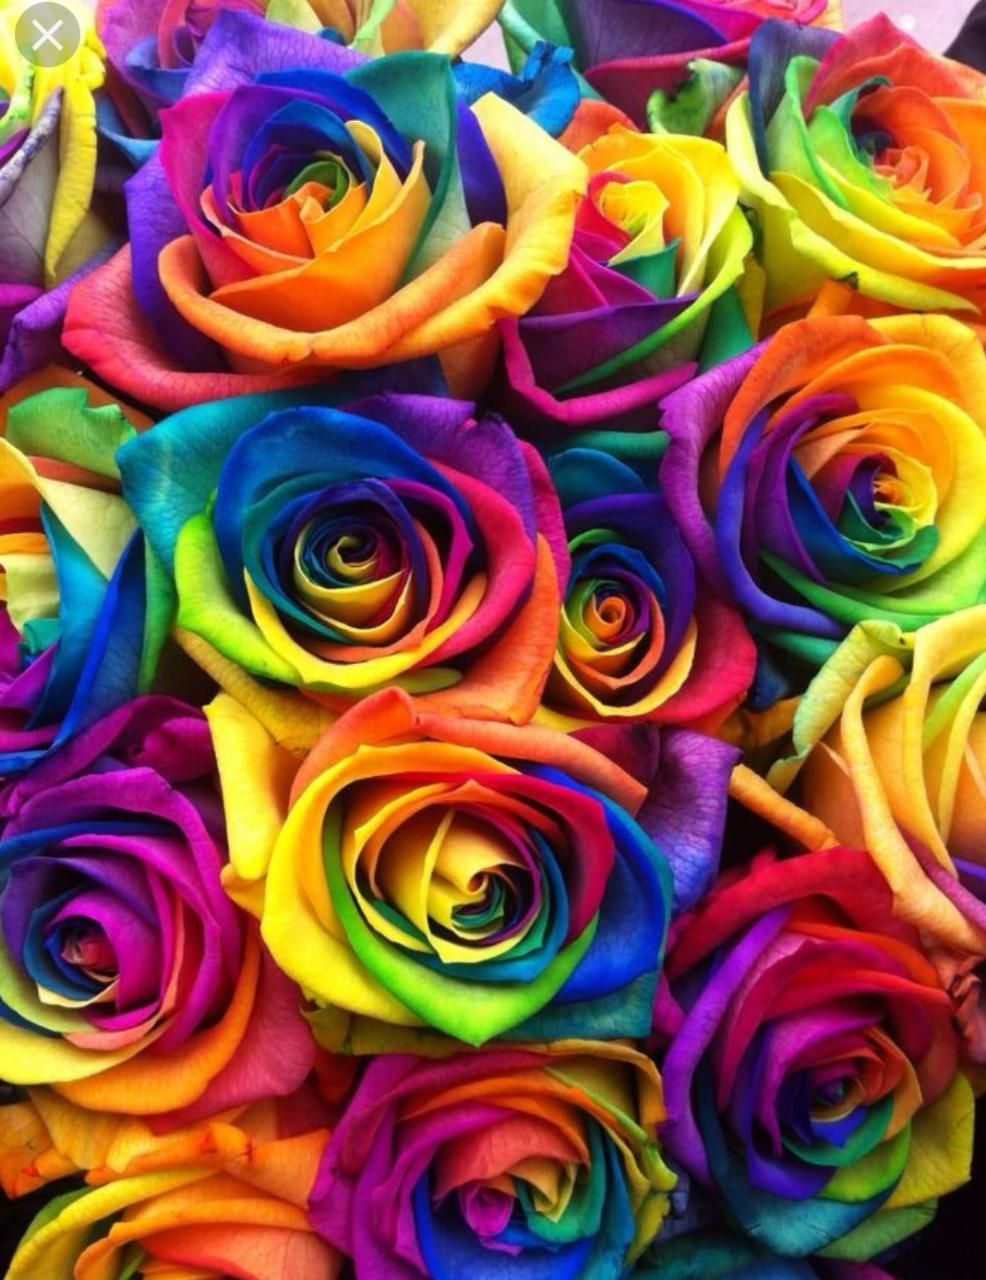 Pin By Hemisha On Floral With Images Rainbow Wallpaper Iphone